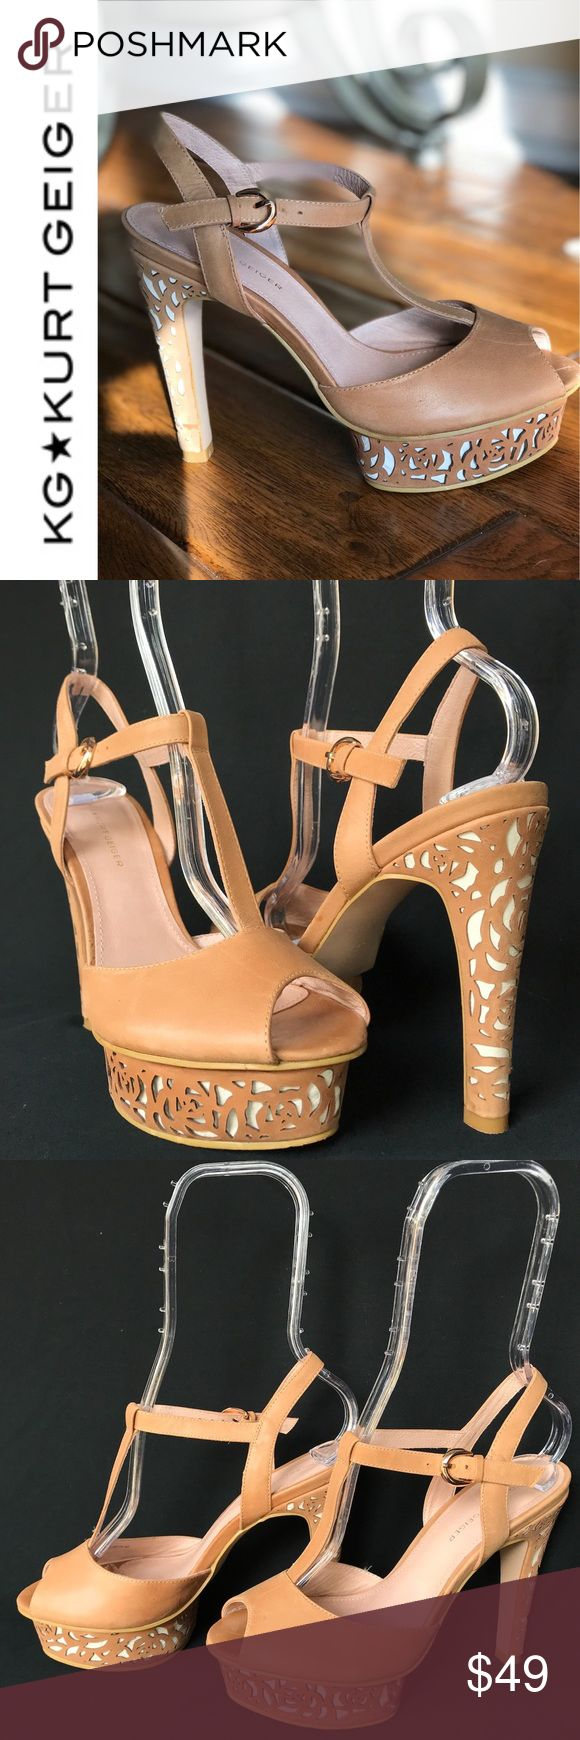 KG Kurt Geiger Peep Toe Platform Heel Sz 37 Rare KG Kurt Geiger Camel Tan Peep Toe heels Tan & White Floral Platform Sz 37 US 7 Very unique Leather KG Kurt Geiger peep toe heels that are in lightly used condition. Intricate floral design on the front platform as well as the heel of the shoe. Made with a tan/caramel leather. T-strap design that lies nicely on the top of the foot. Gold tone buckle closure for fastening. Salmon colored interior with light mark from sole insert removal. Please…